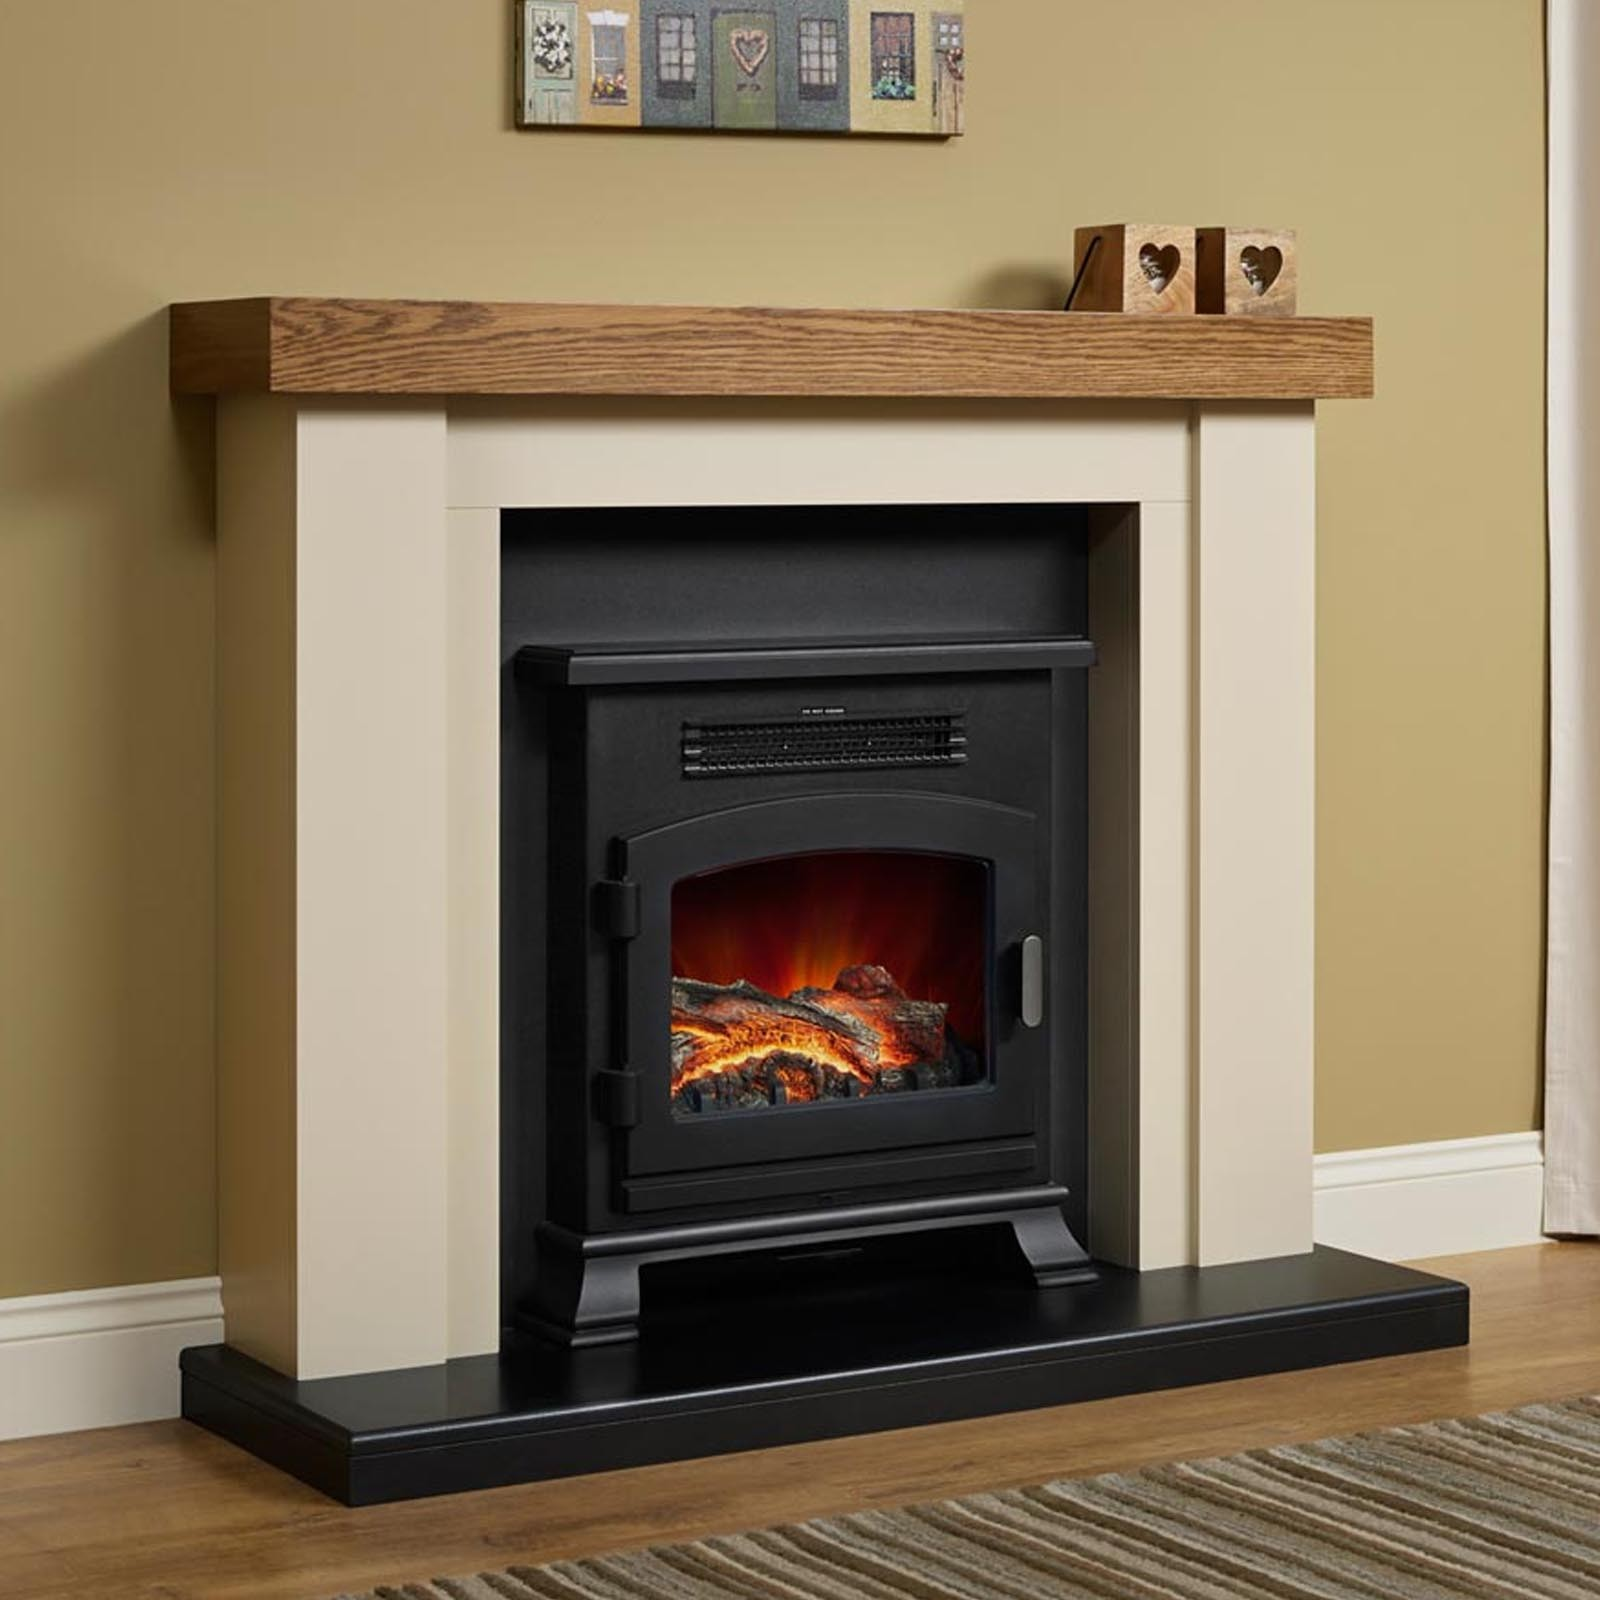 Best Electric Stove Fireplace Electric Stove Fireplace Best House Design